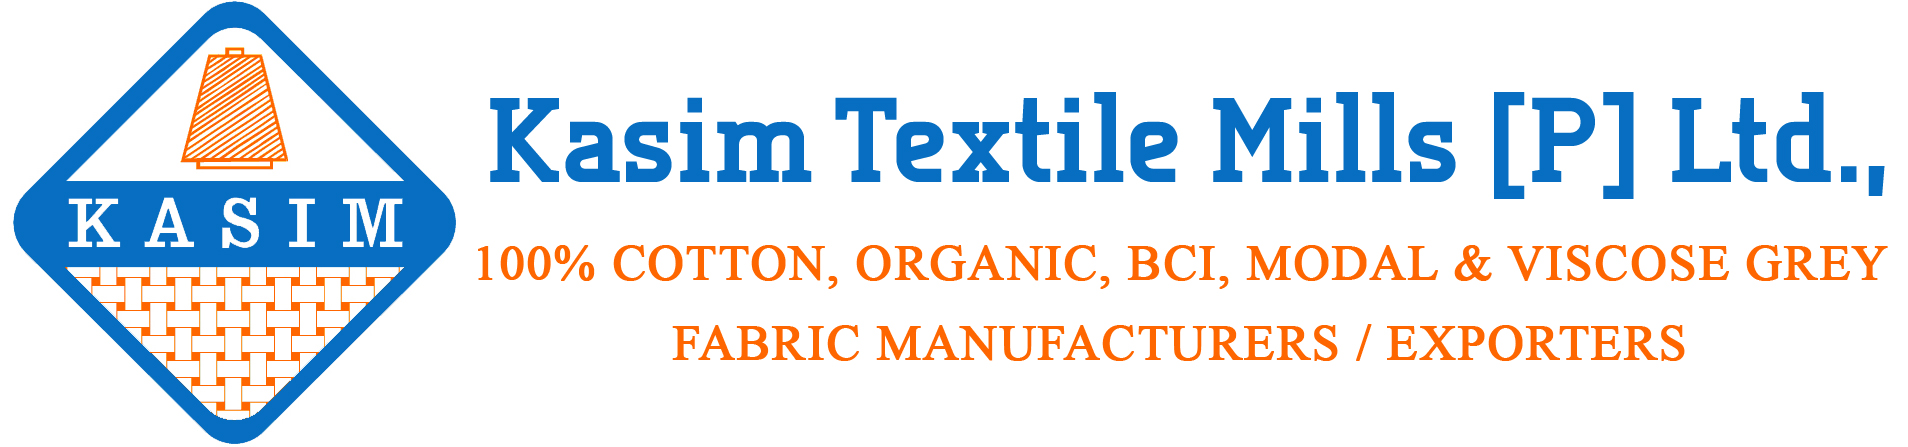 Kasim Textile Pvt Ltd